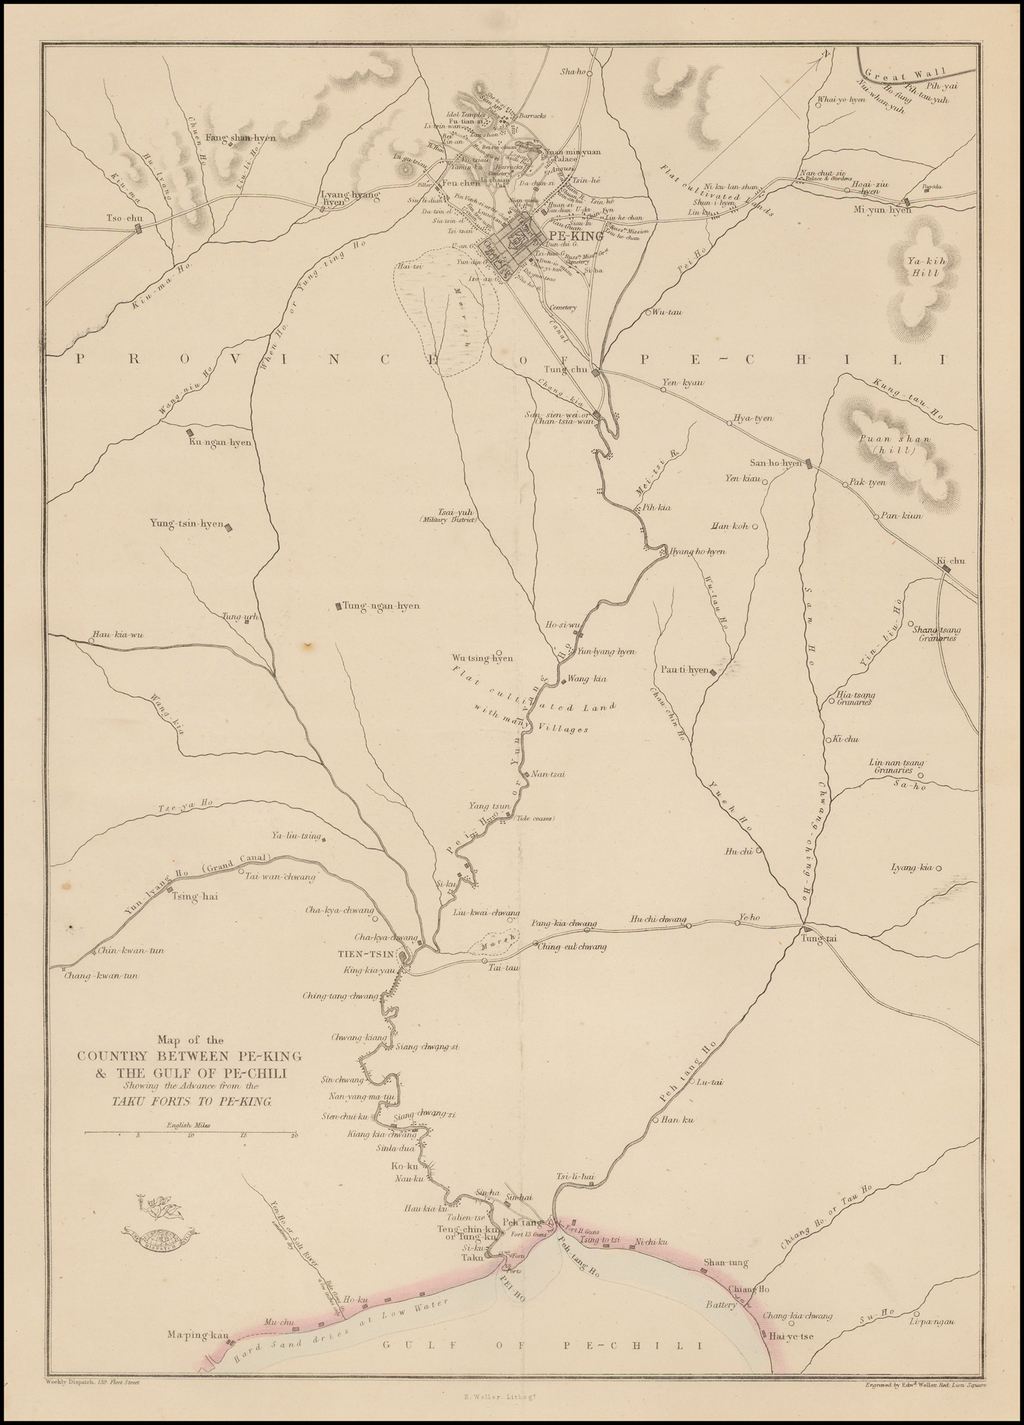 Map of the Country Between Pe-King & The Gulf of Pe-Chini Showing the Advance from the Taku Forts To Pe-King By Edward Weller